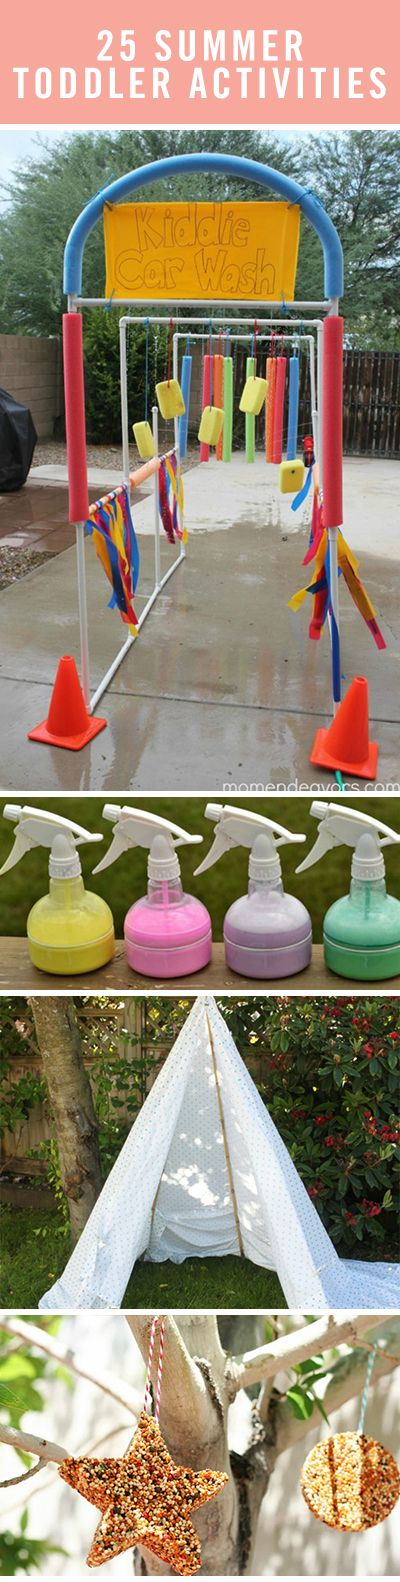 Fun outdoor kids crafts like spray chalk or DIY bird feeders will keep your toddlers entertained all summer long!